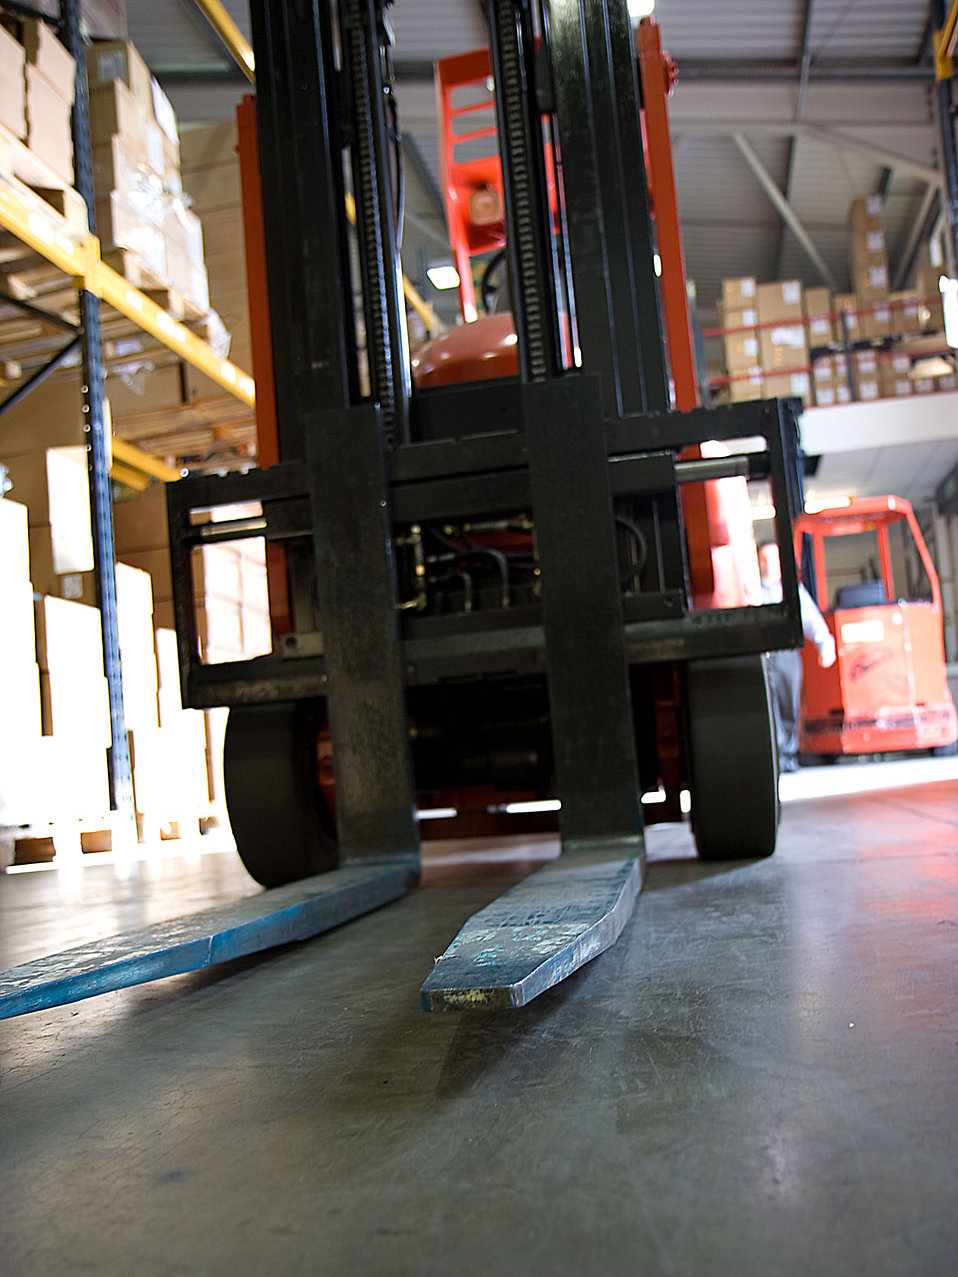 A forklift in a warehouse : Free Stock Photo